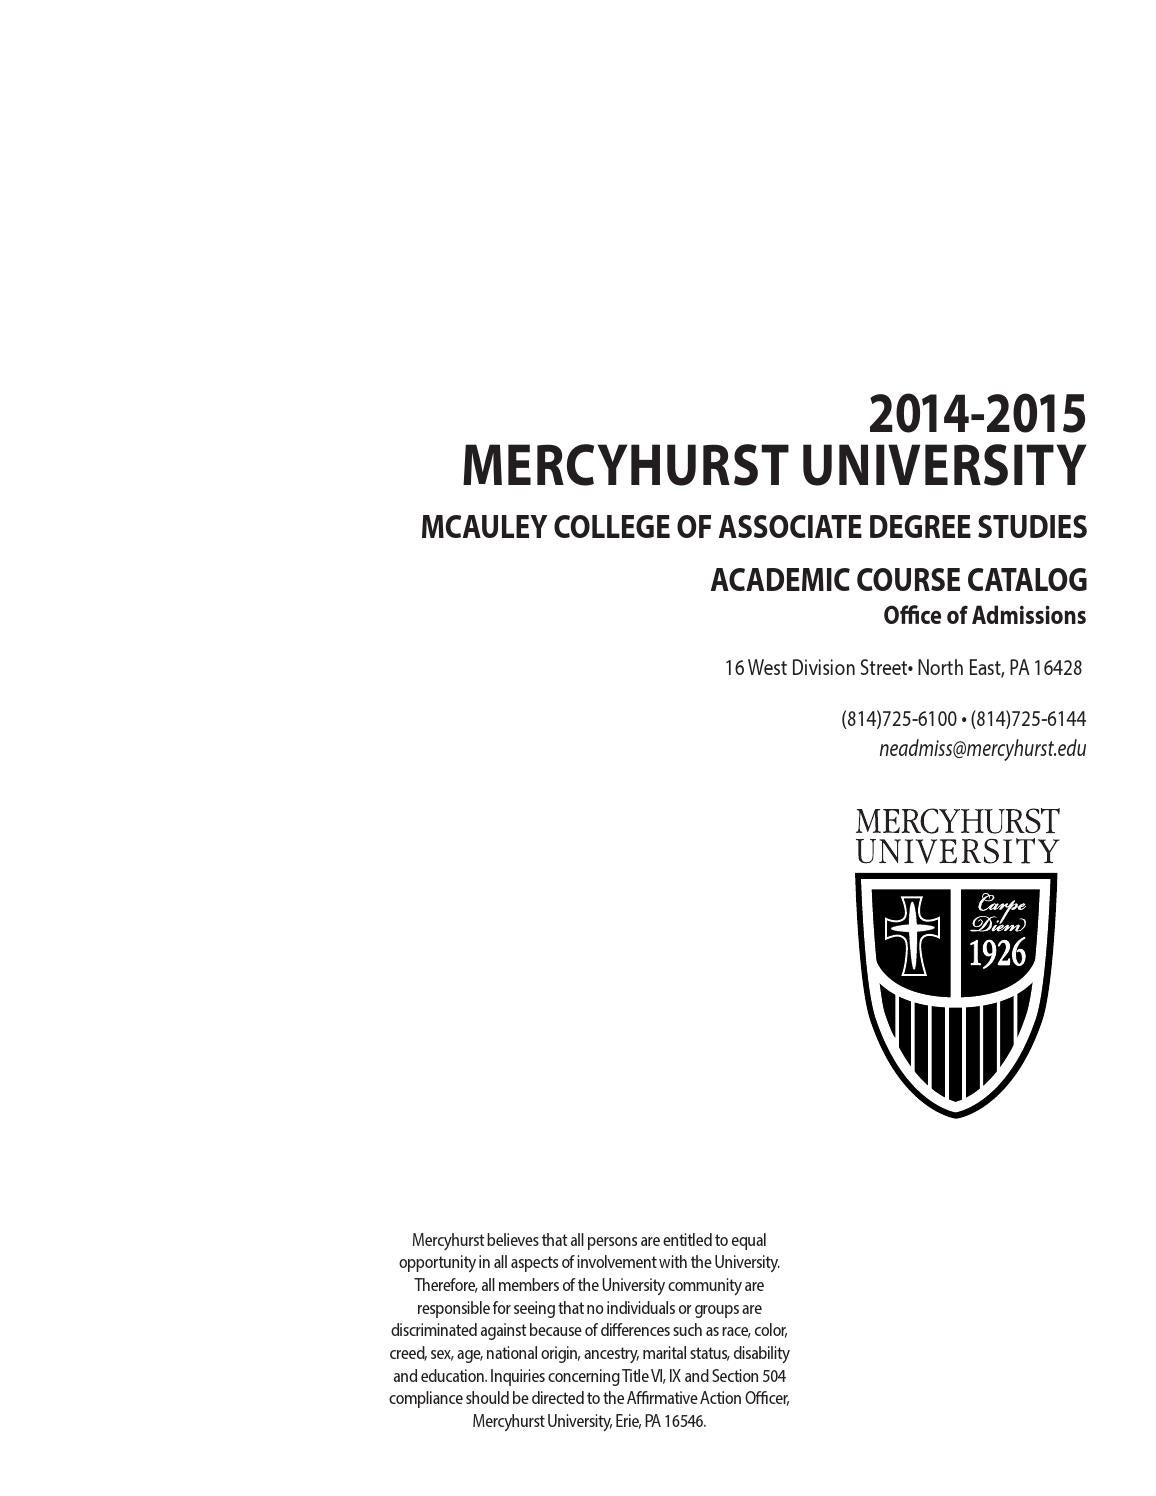 Mercyhurst north east course catalog 14 15 by mercyhurst mercyhurst north east course catalog 14 15 by mercyhurst university issuu xflitez Gallery